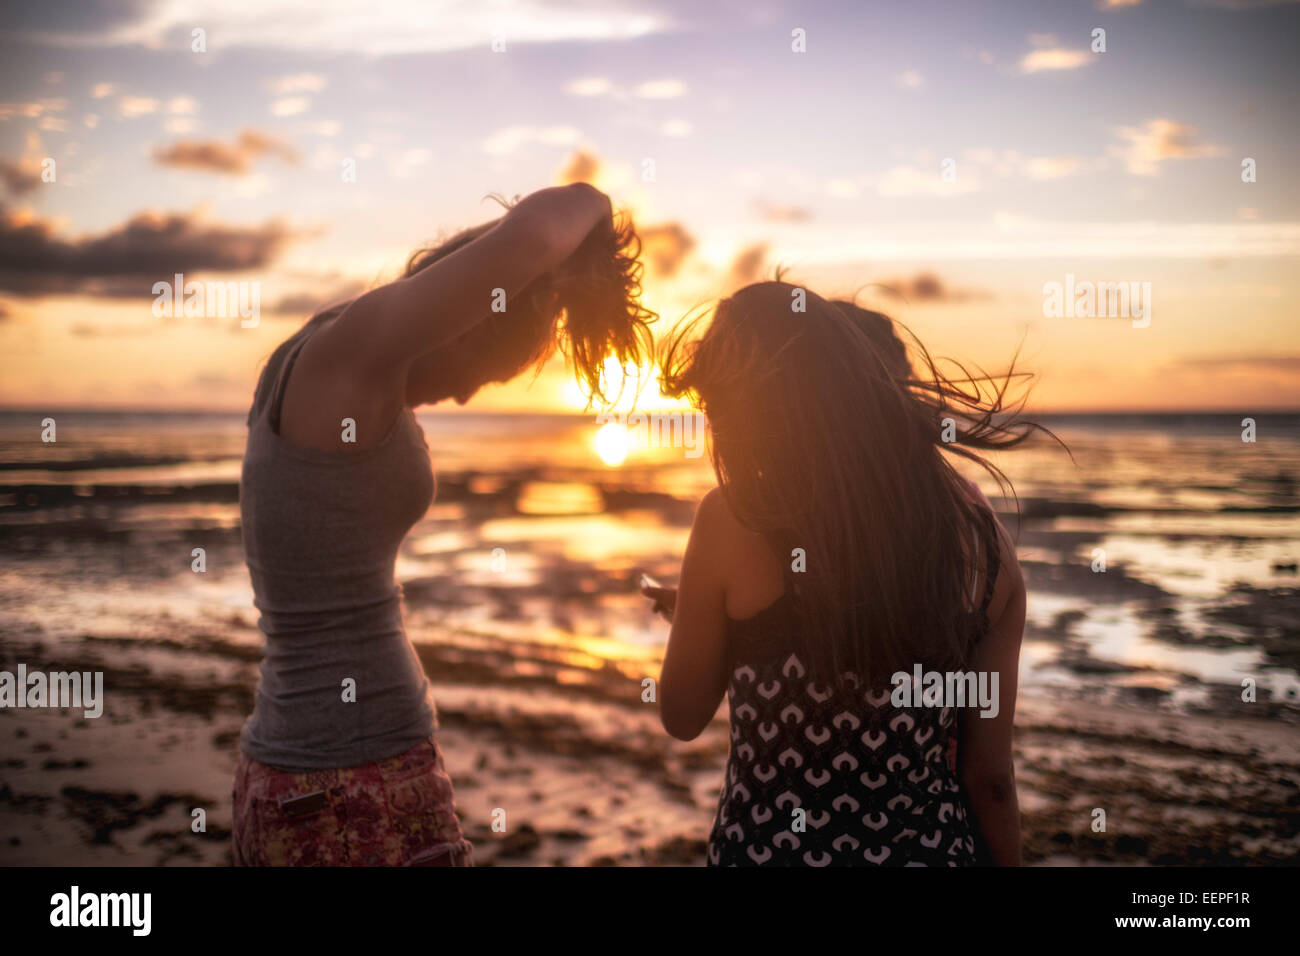 girls tying the hair in the beach - Stock Image